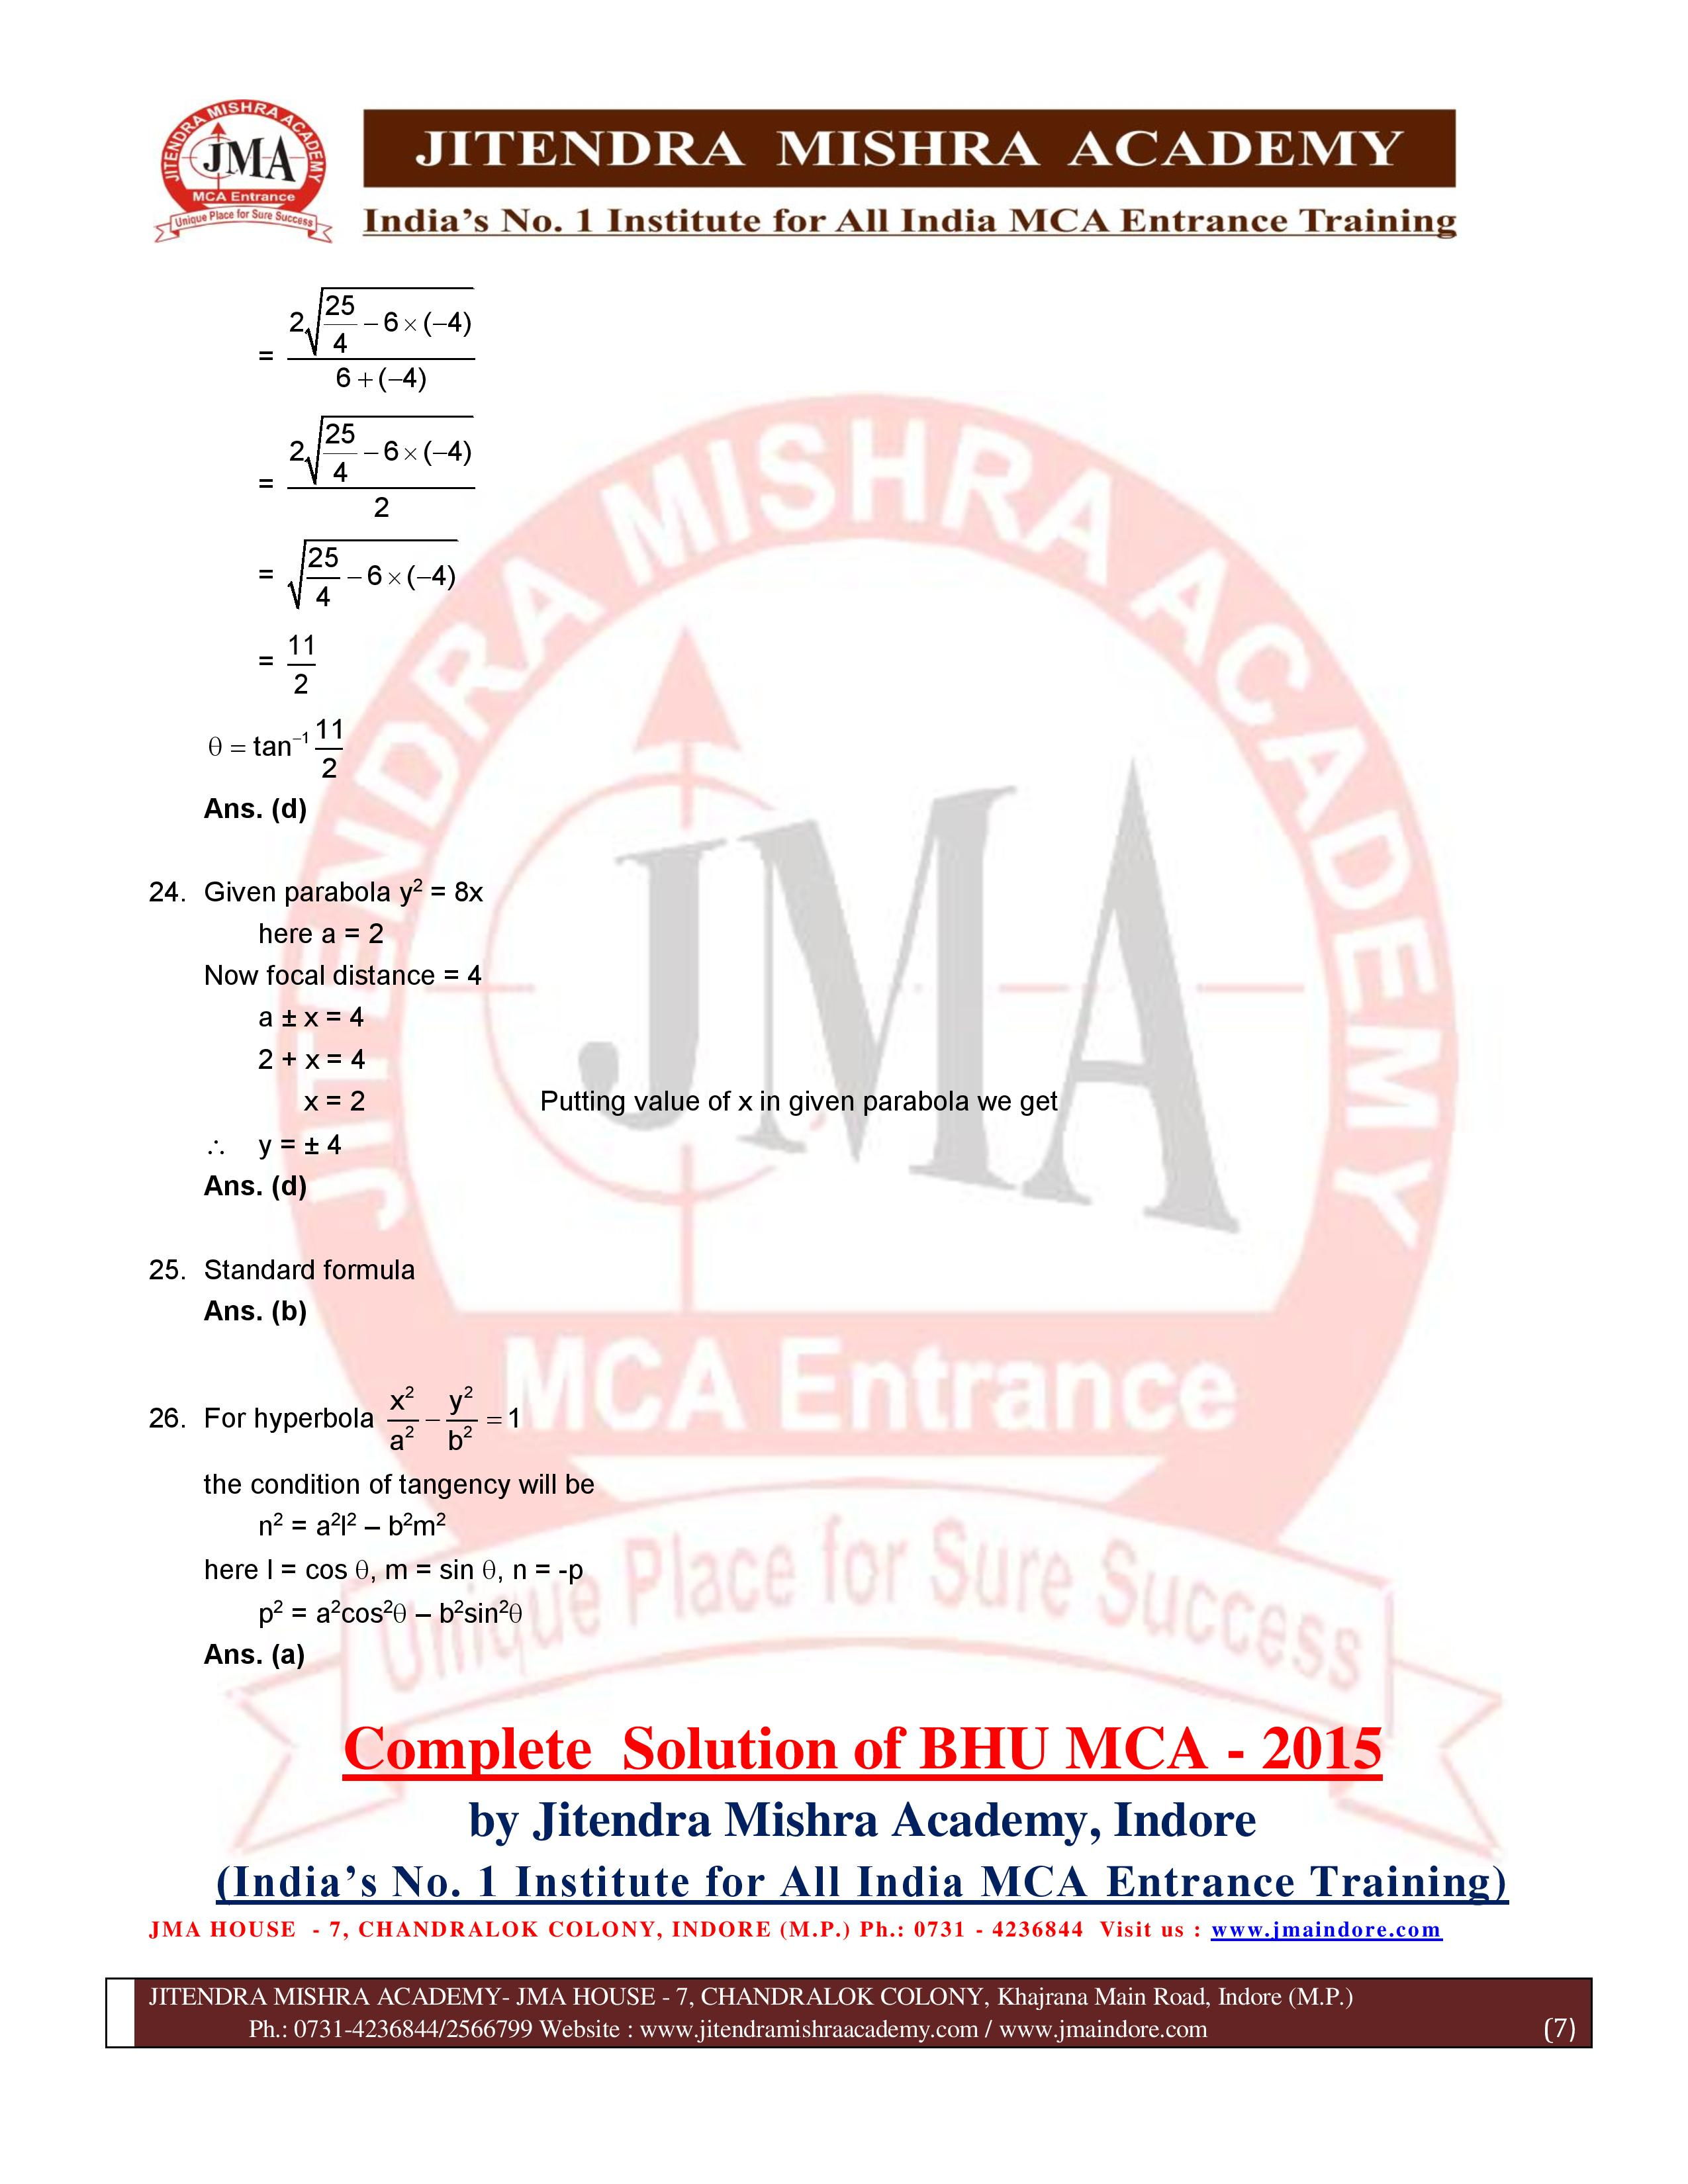 BHU 2015 SOLUTION (SET - 1) (29.06.16)-page-007